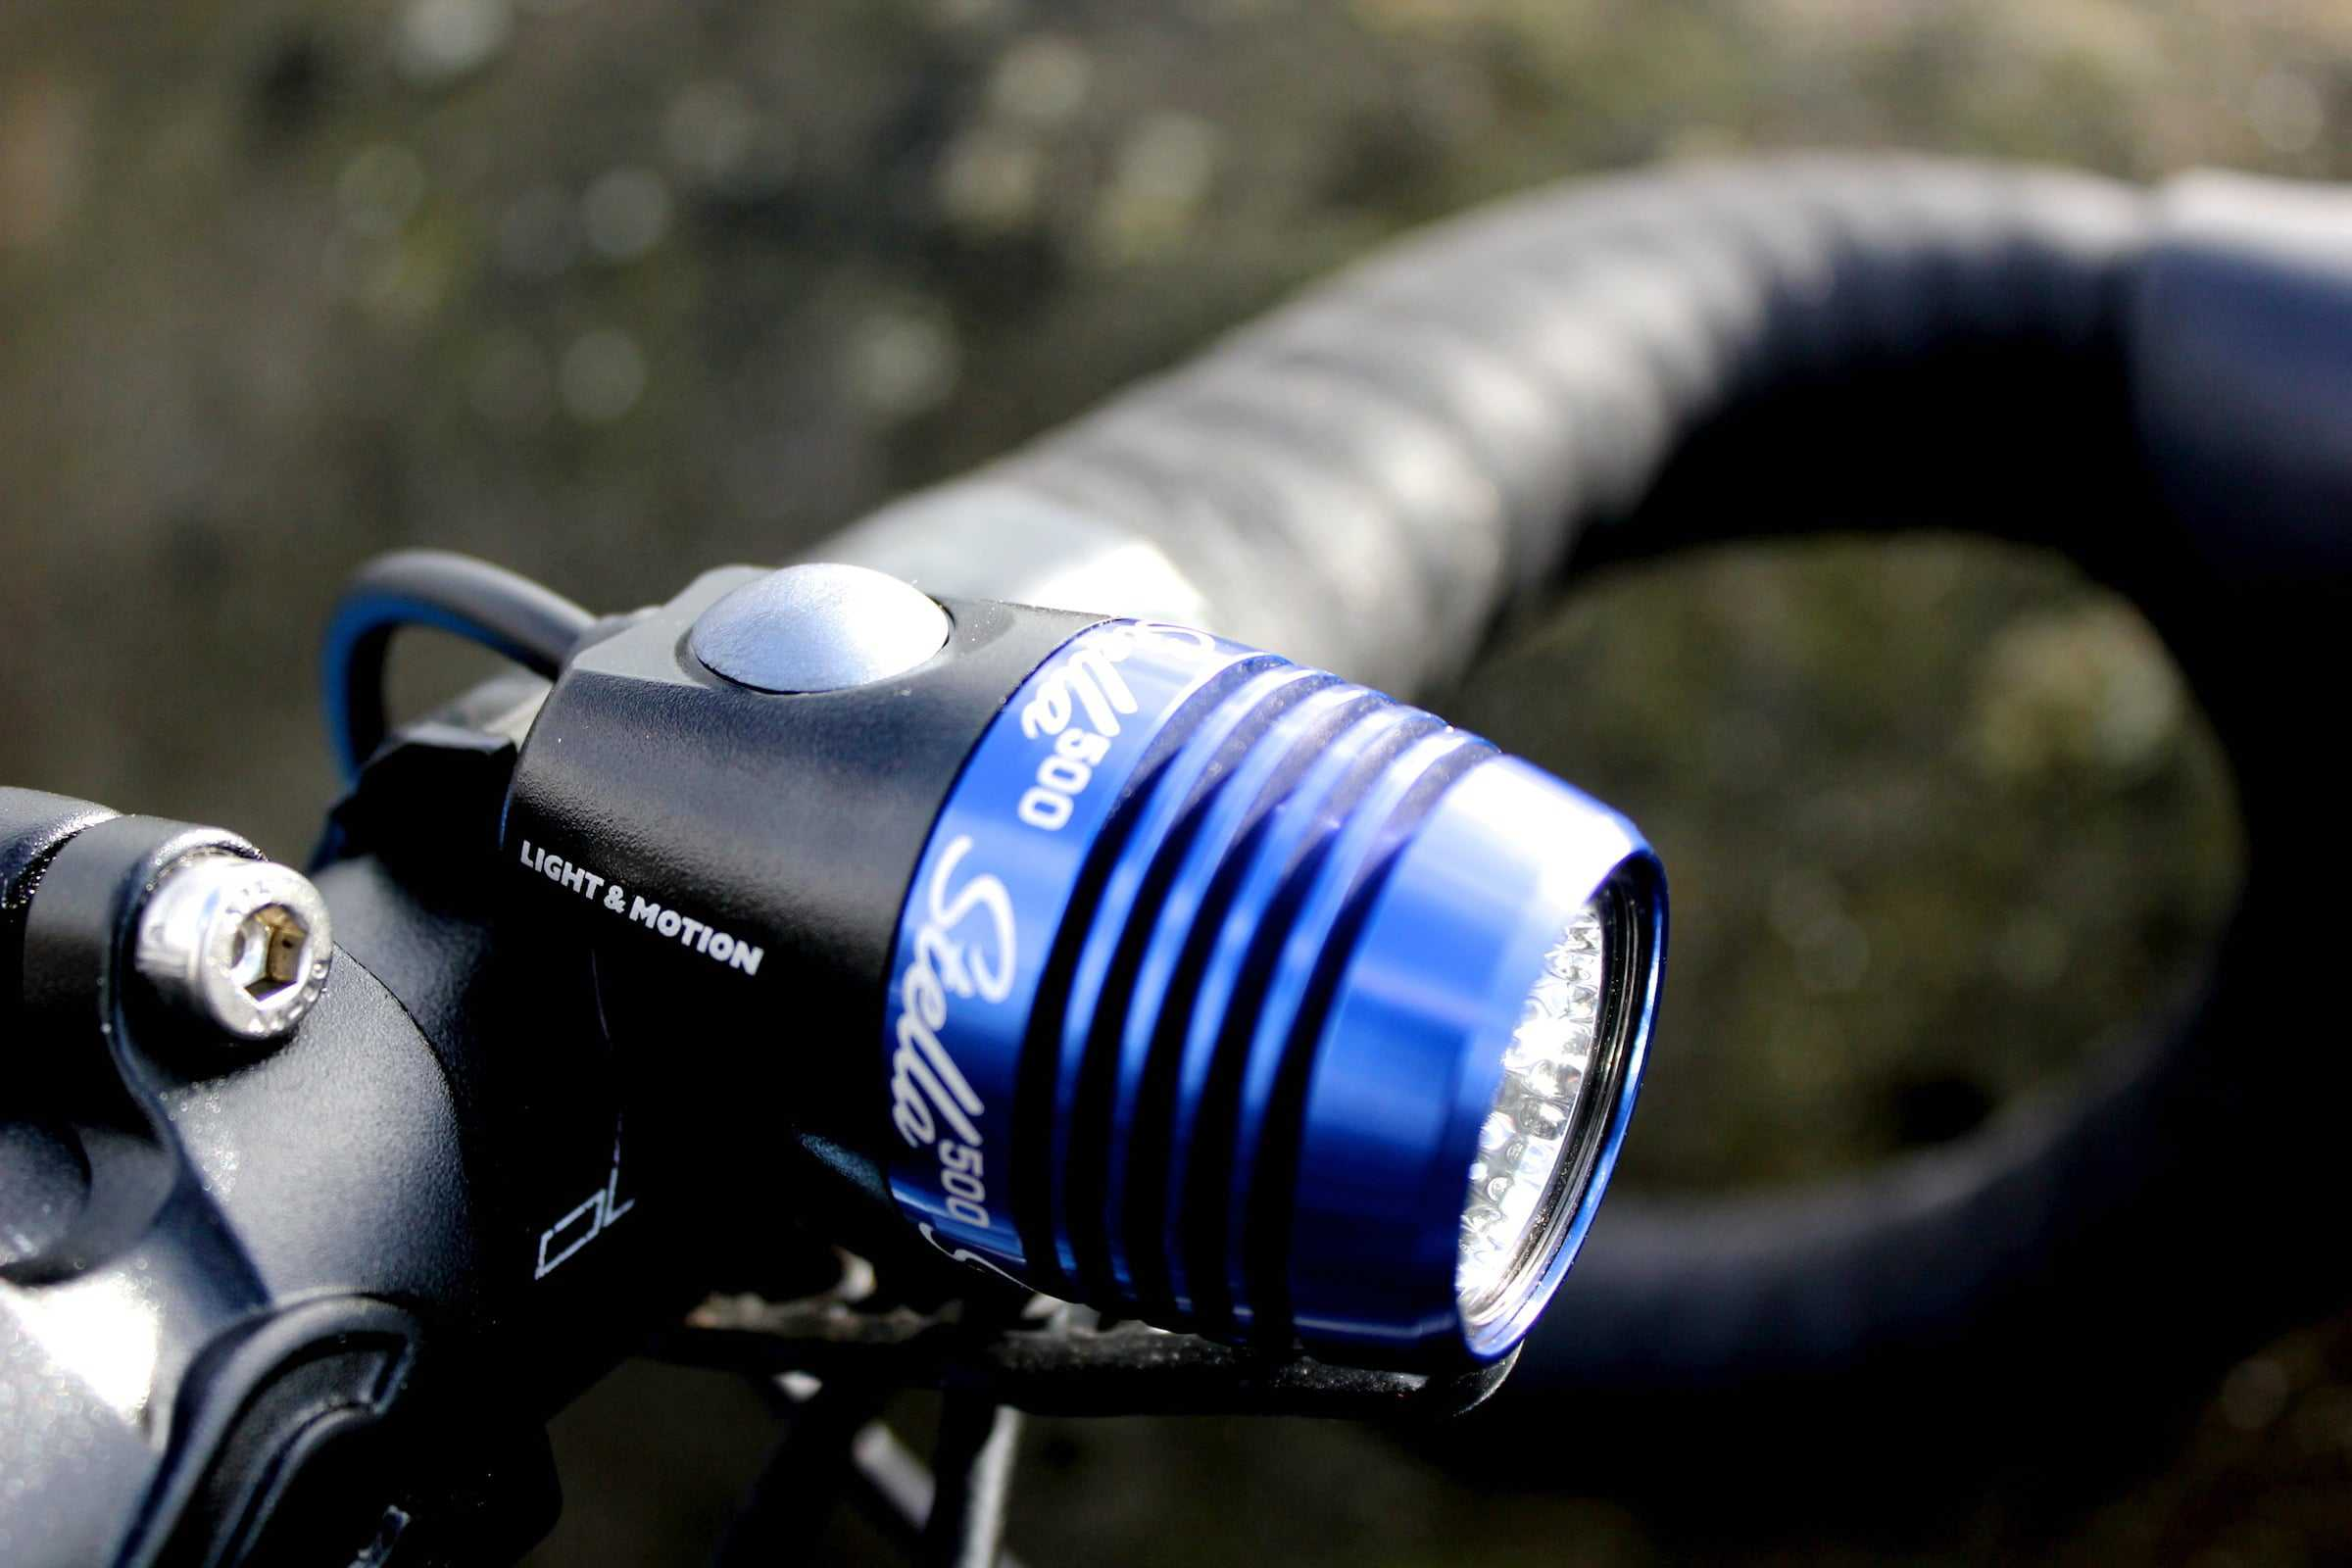 Importance Of Bike Lights And How To Choose Them Wisely